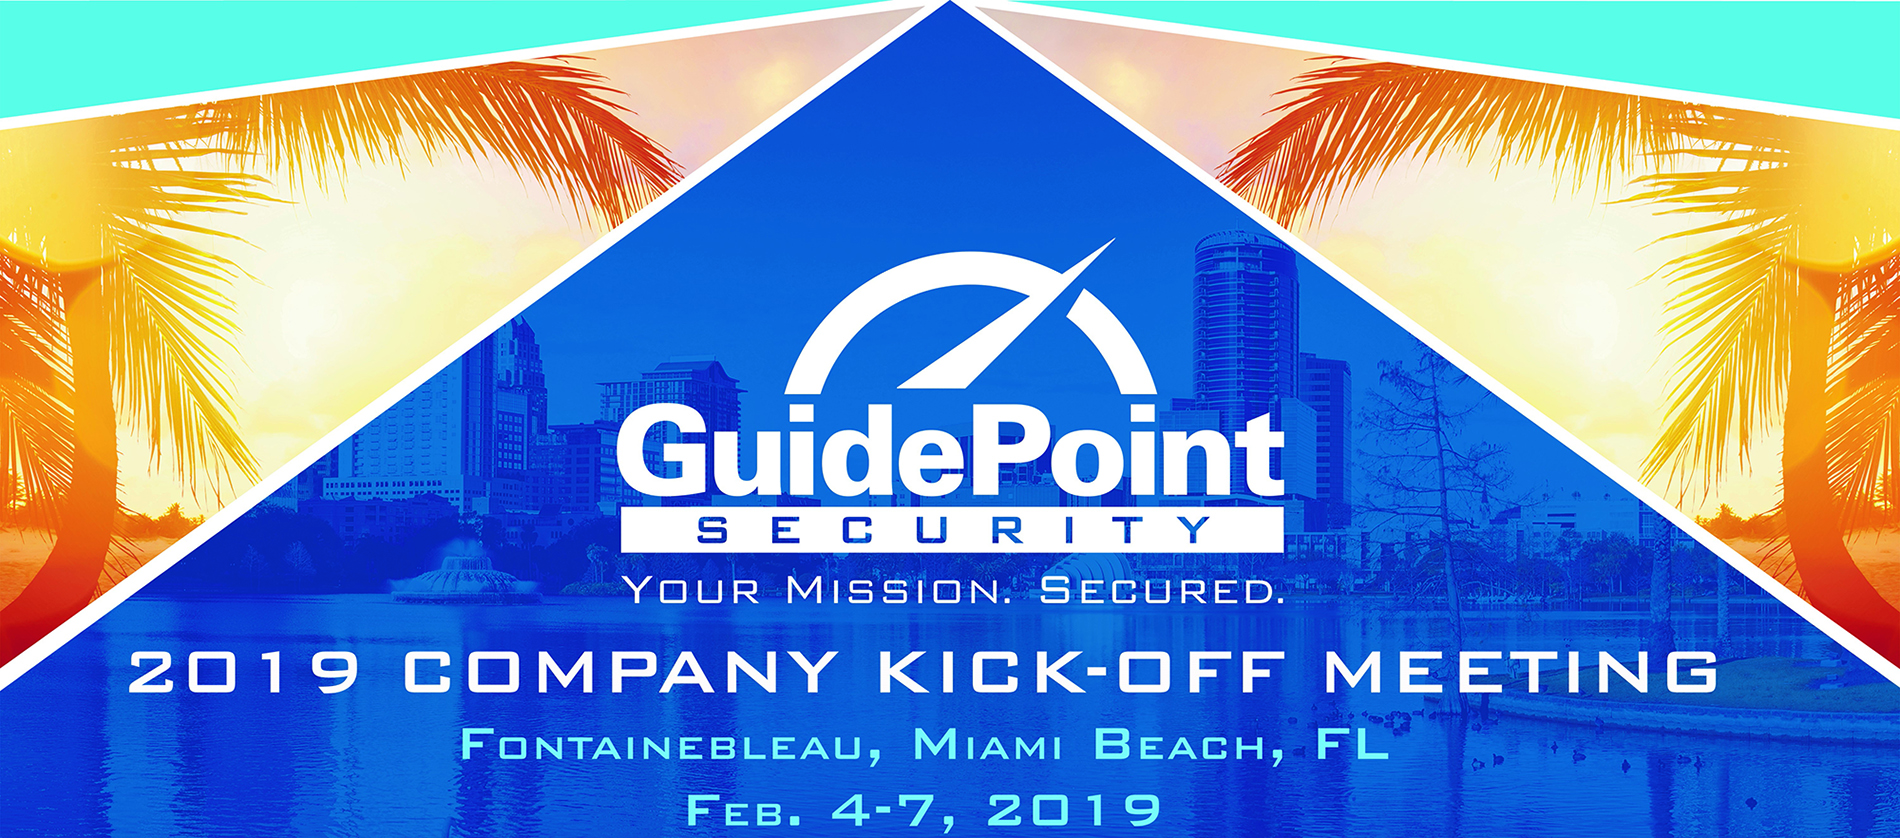 GuidePoint Security 2019 Kick-Off Meeting